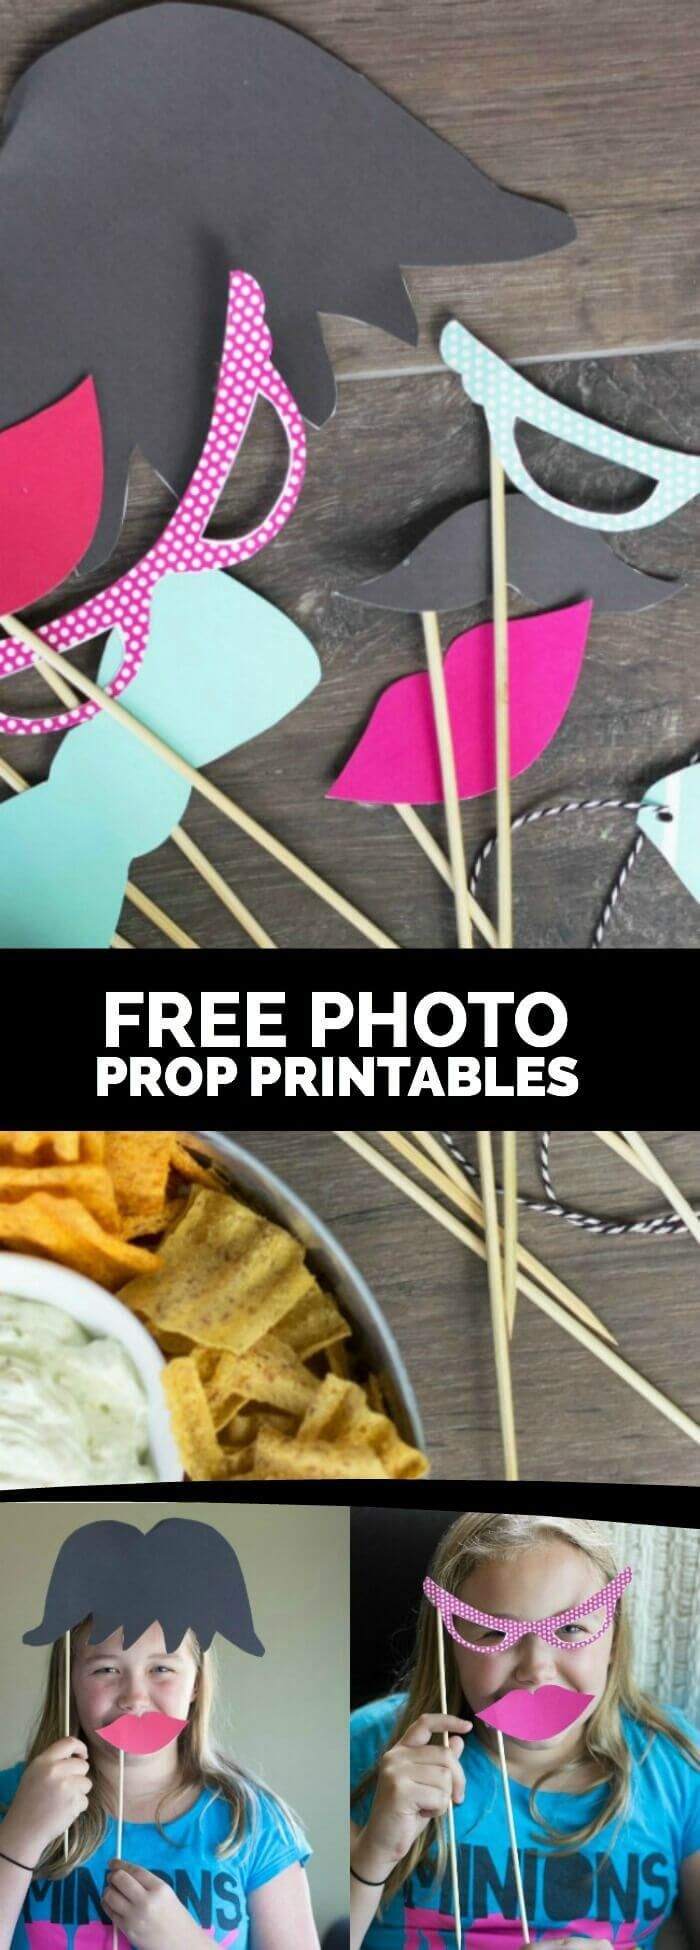 Free Photo Prop Printables + an awesome chip dip recipe!